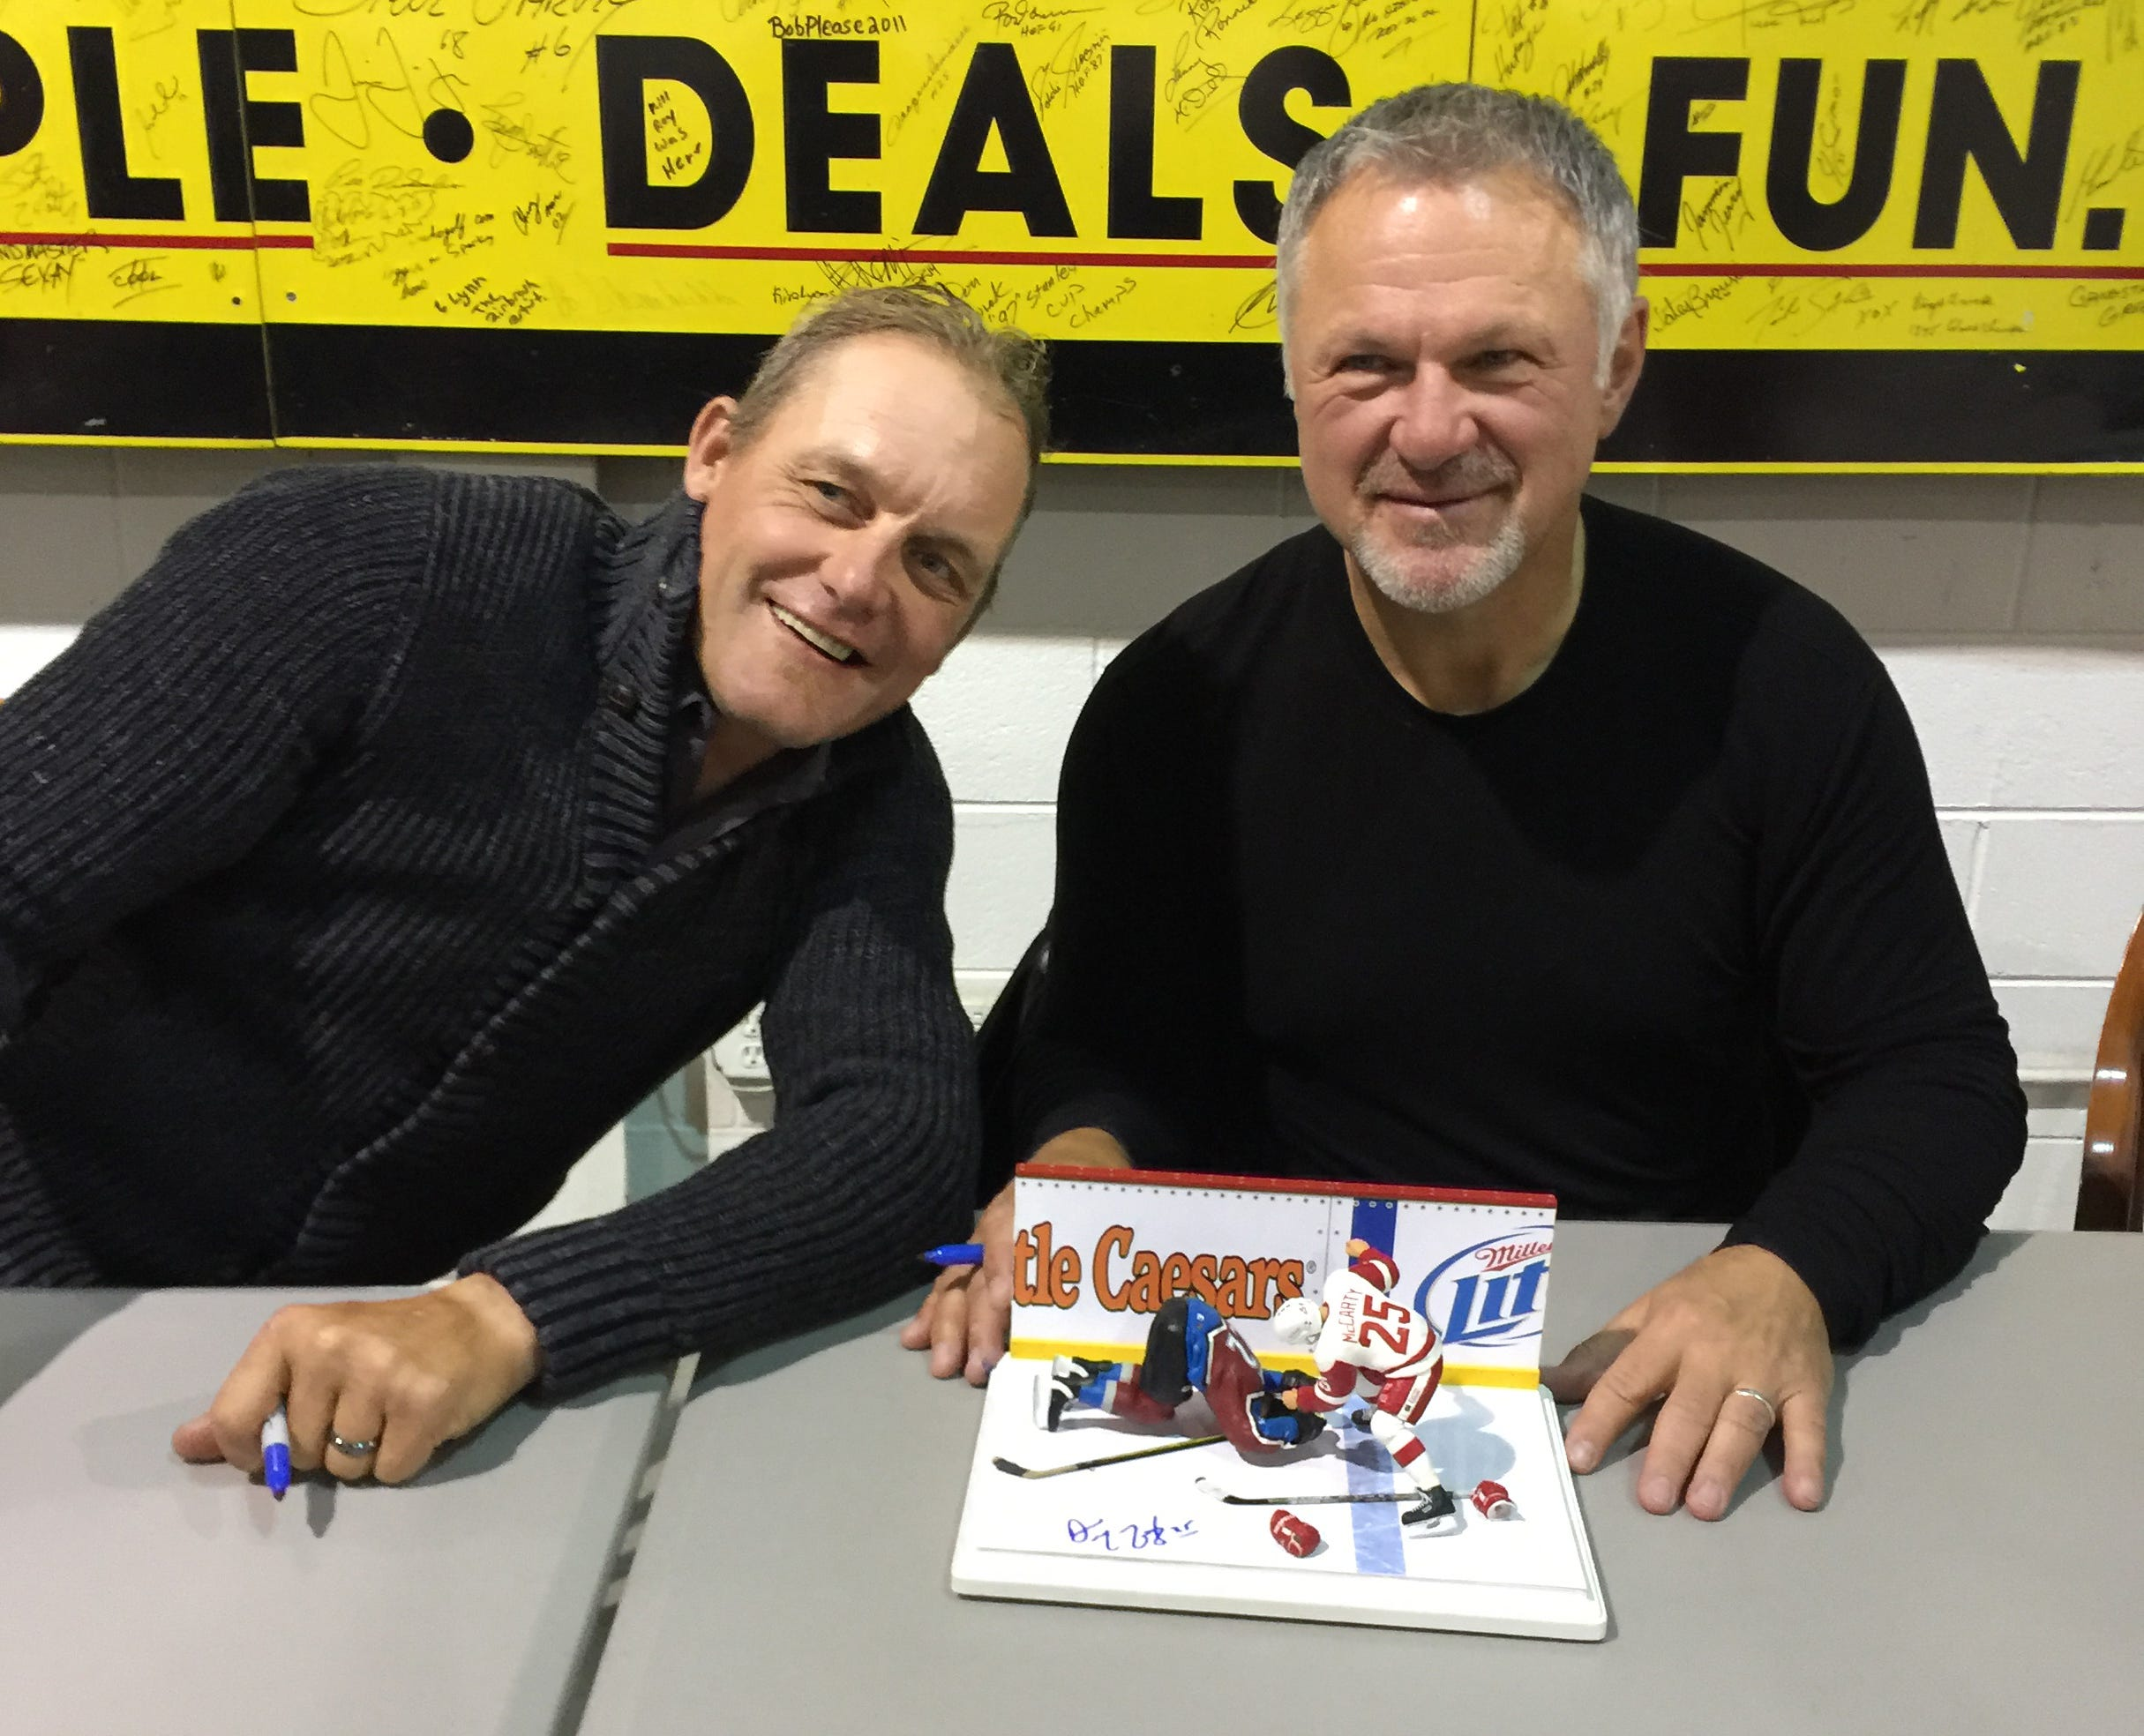 Darren McCarty and Claude Lemieux meet with smiles, not punches